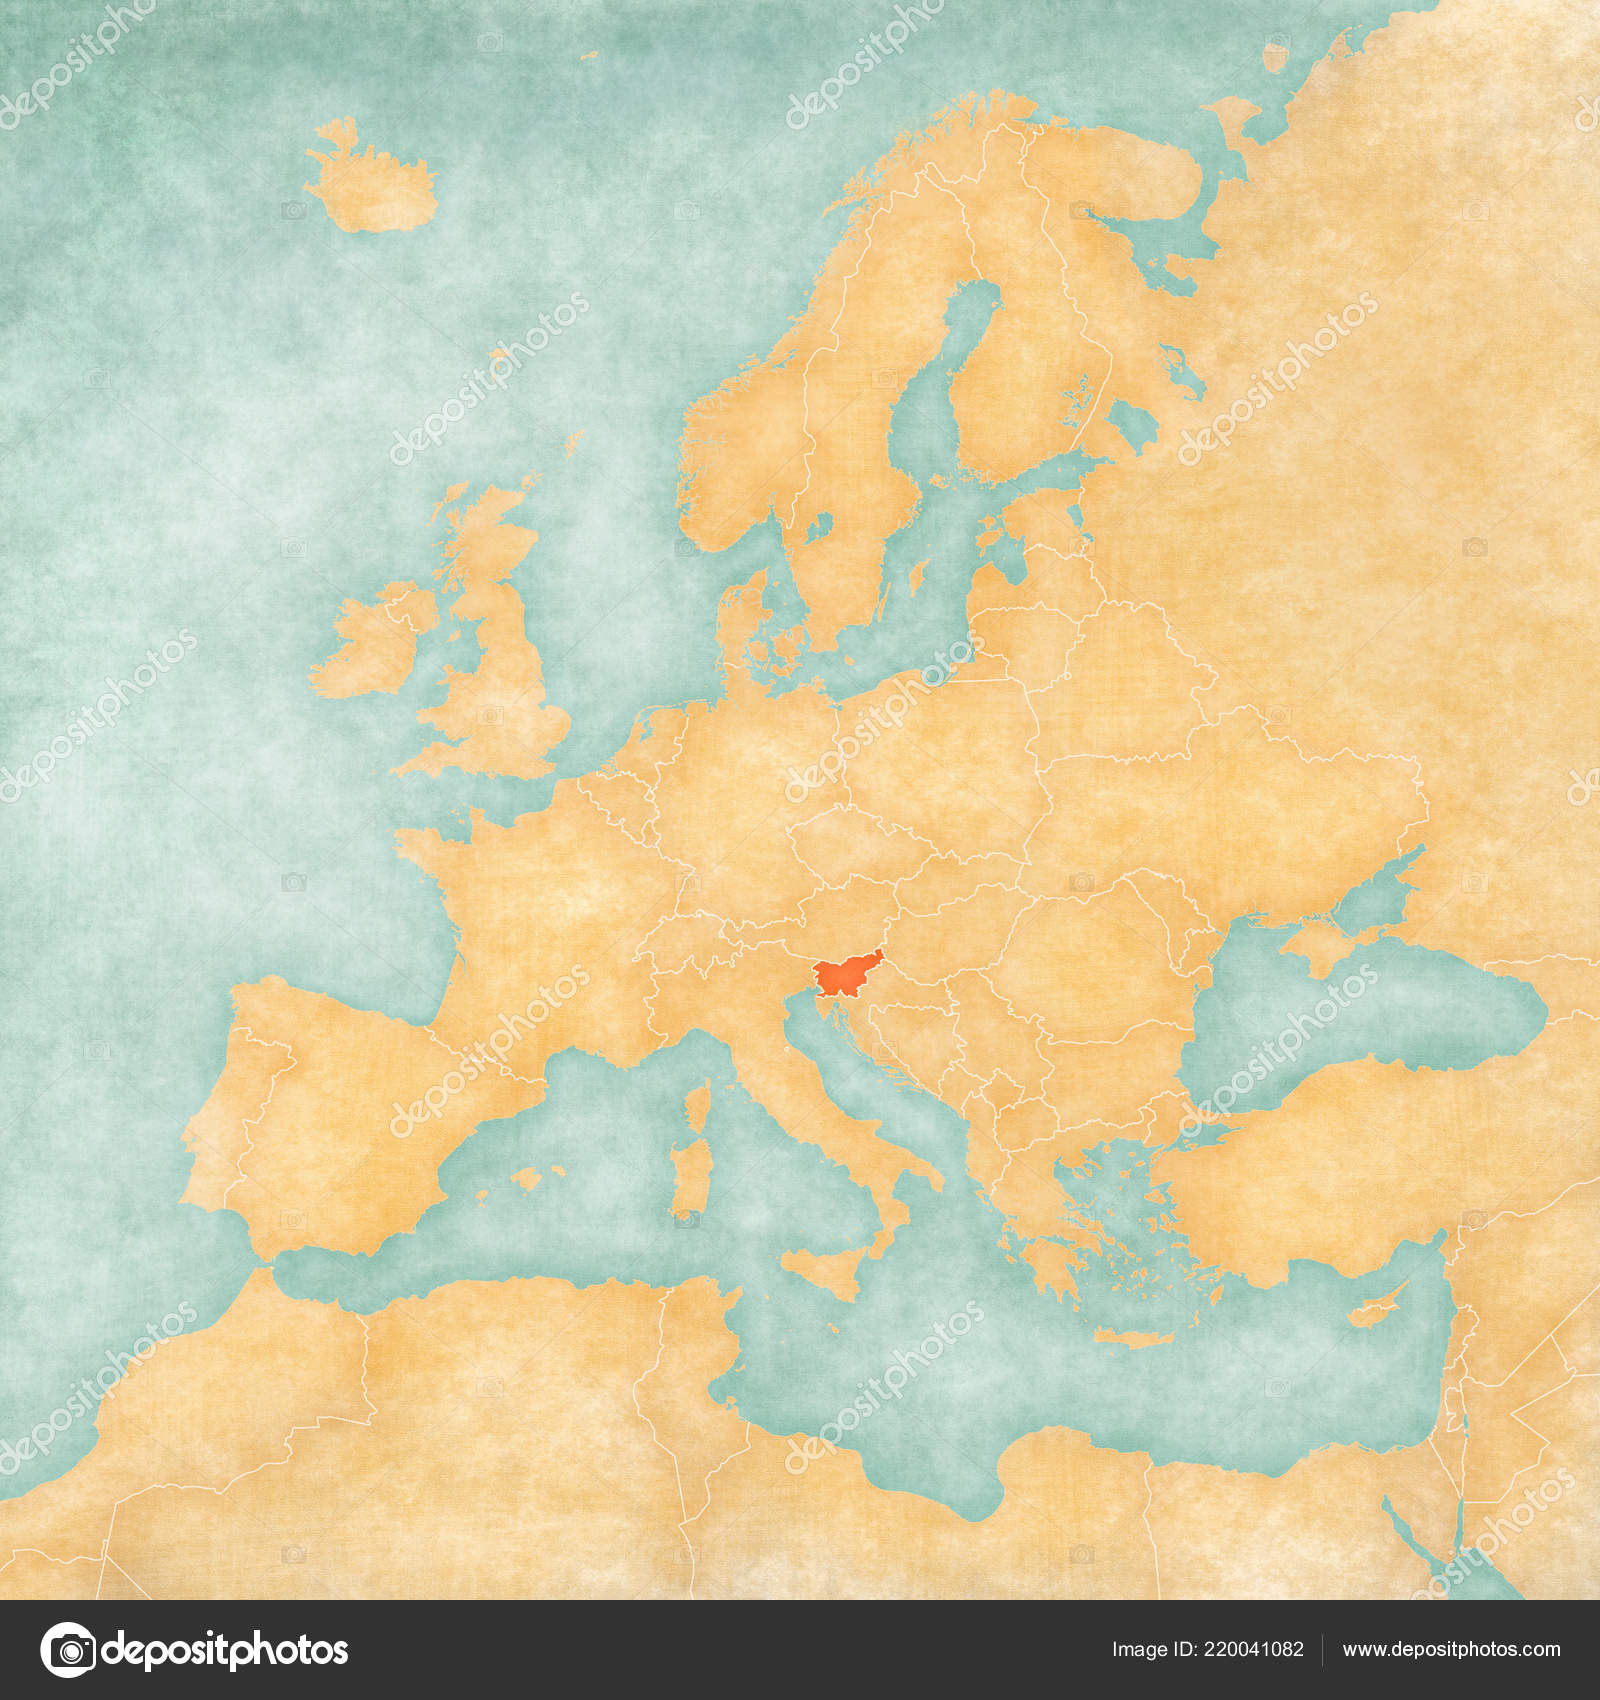 Slovenia Map Europe Soft Grunge Vintage Style Old Paper ...